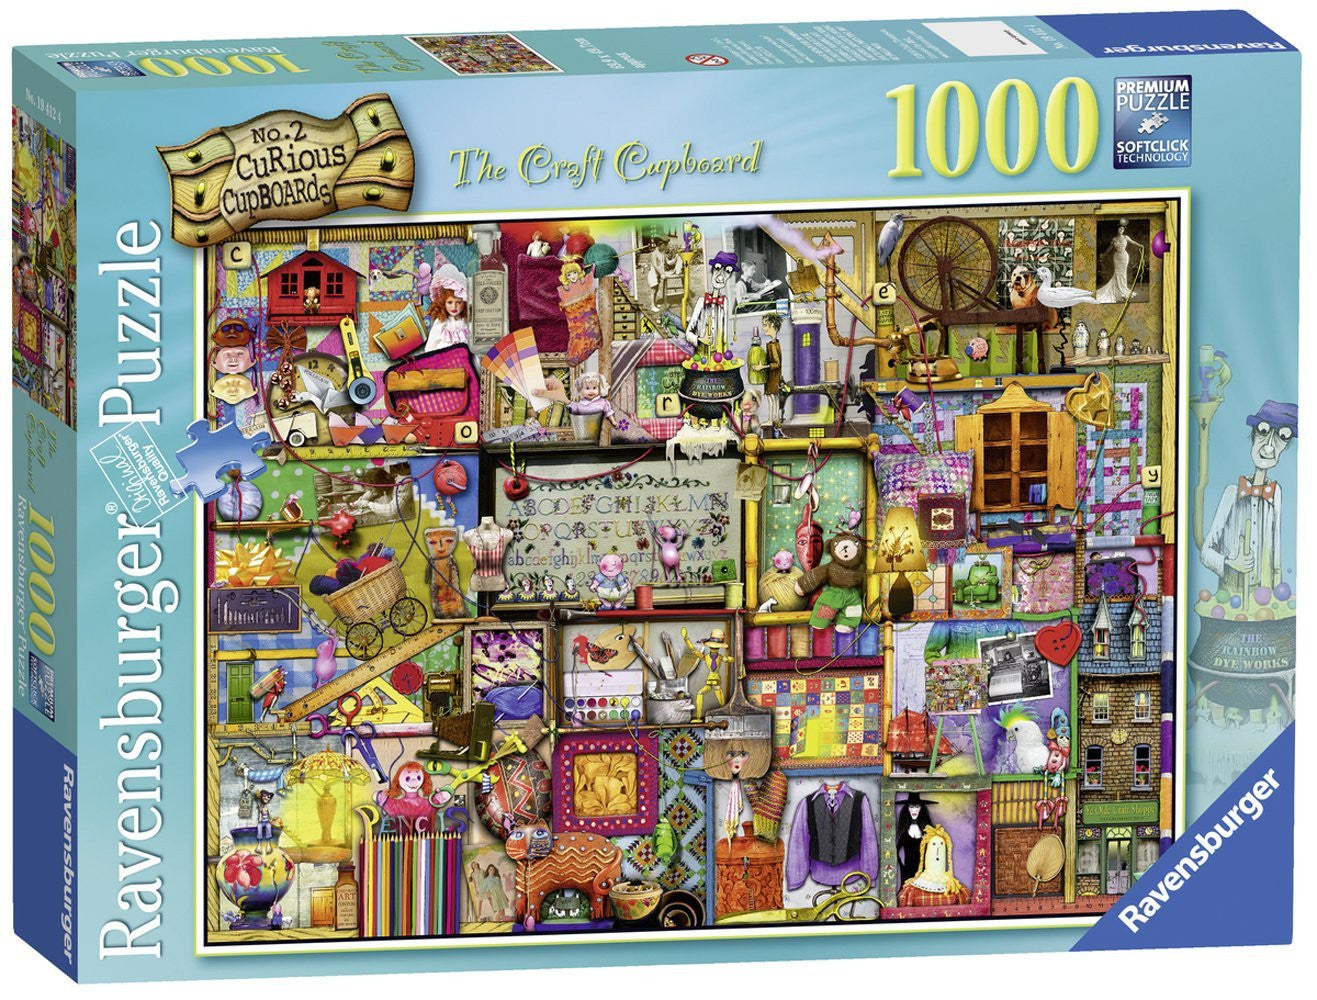 Ravensburger Adult Puzzles 1000 pc Puzzles - The Craft Cupboard 19412